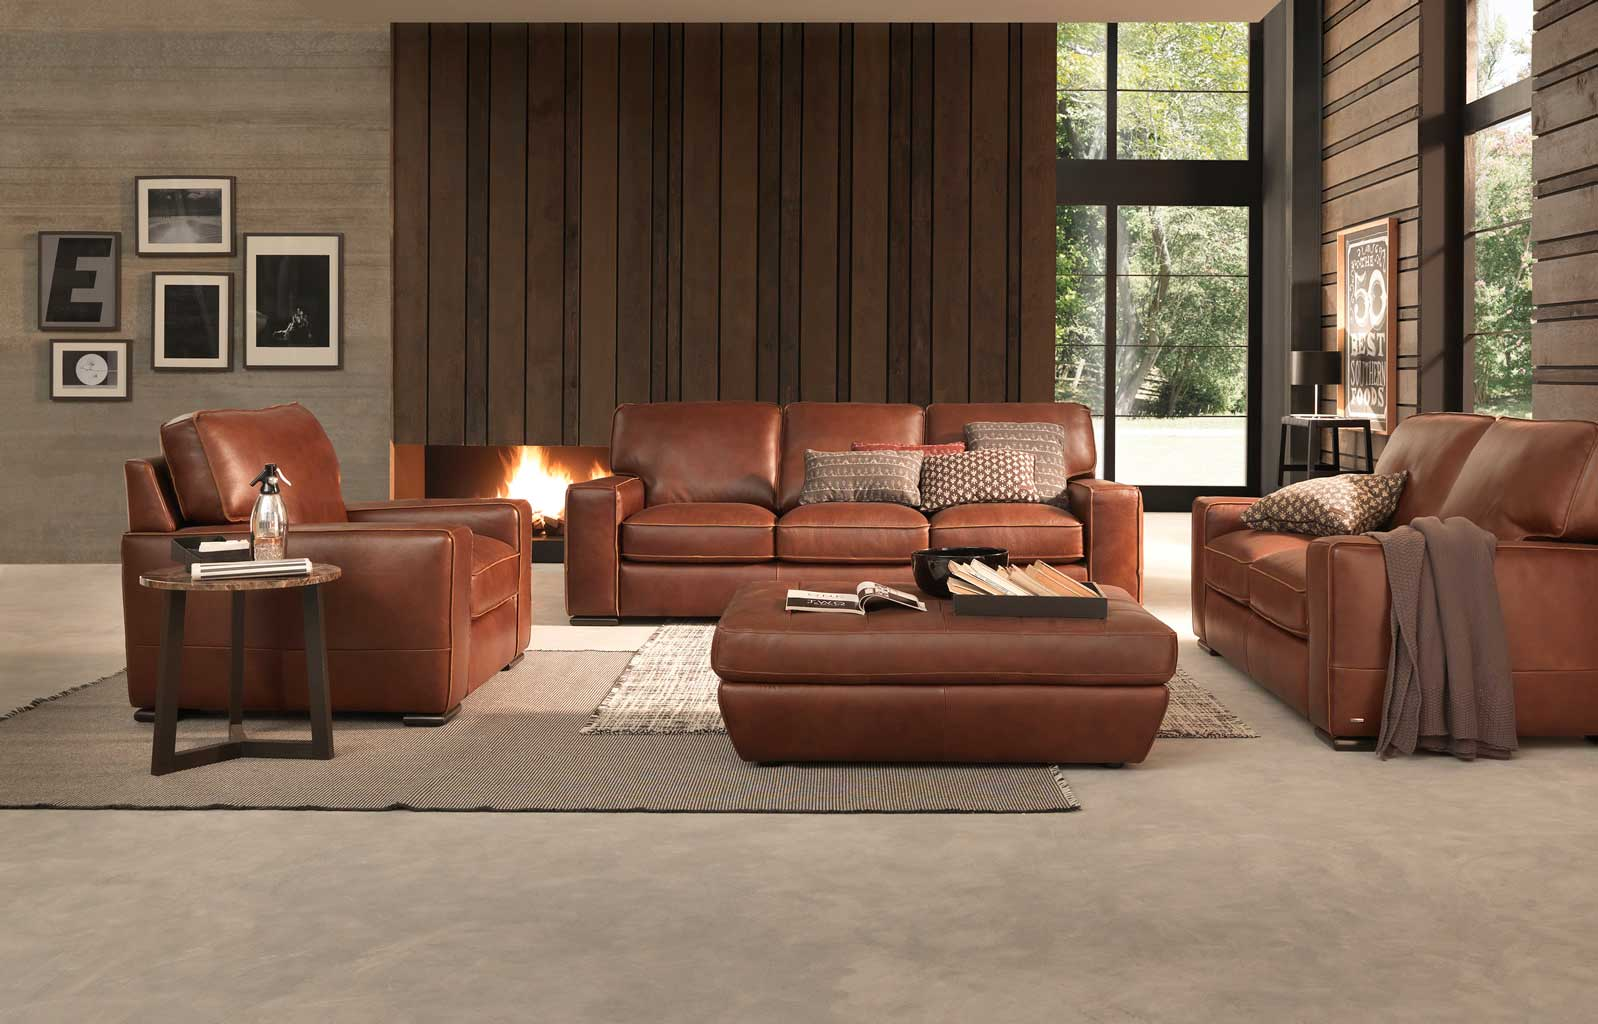 SOFA COLLECTIONS AT DIRECT